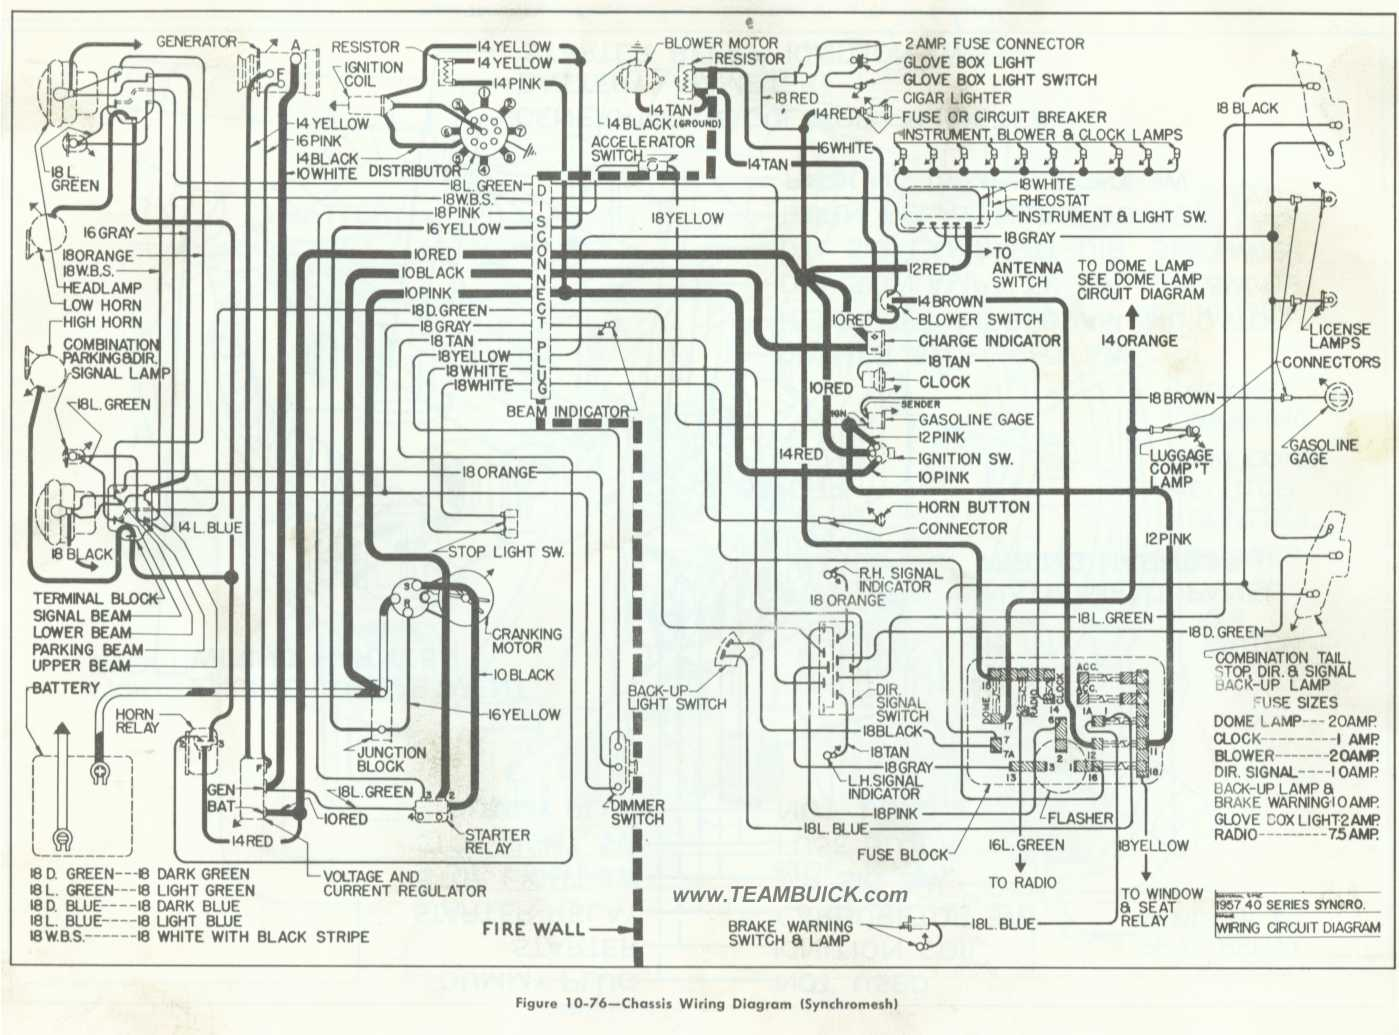 Spartan Chassis Motorhome Wiring Diagrams - Eec Power Relay Wiring Diagram  - ad6e6.cukk.jeanjaures37.fr | Spartan Motorhome Chis Wiring Diagram |  | Wiring Diagram Resource